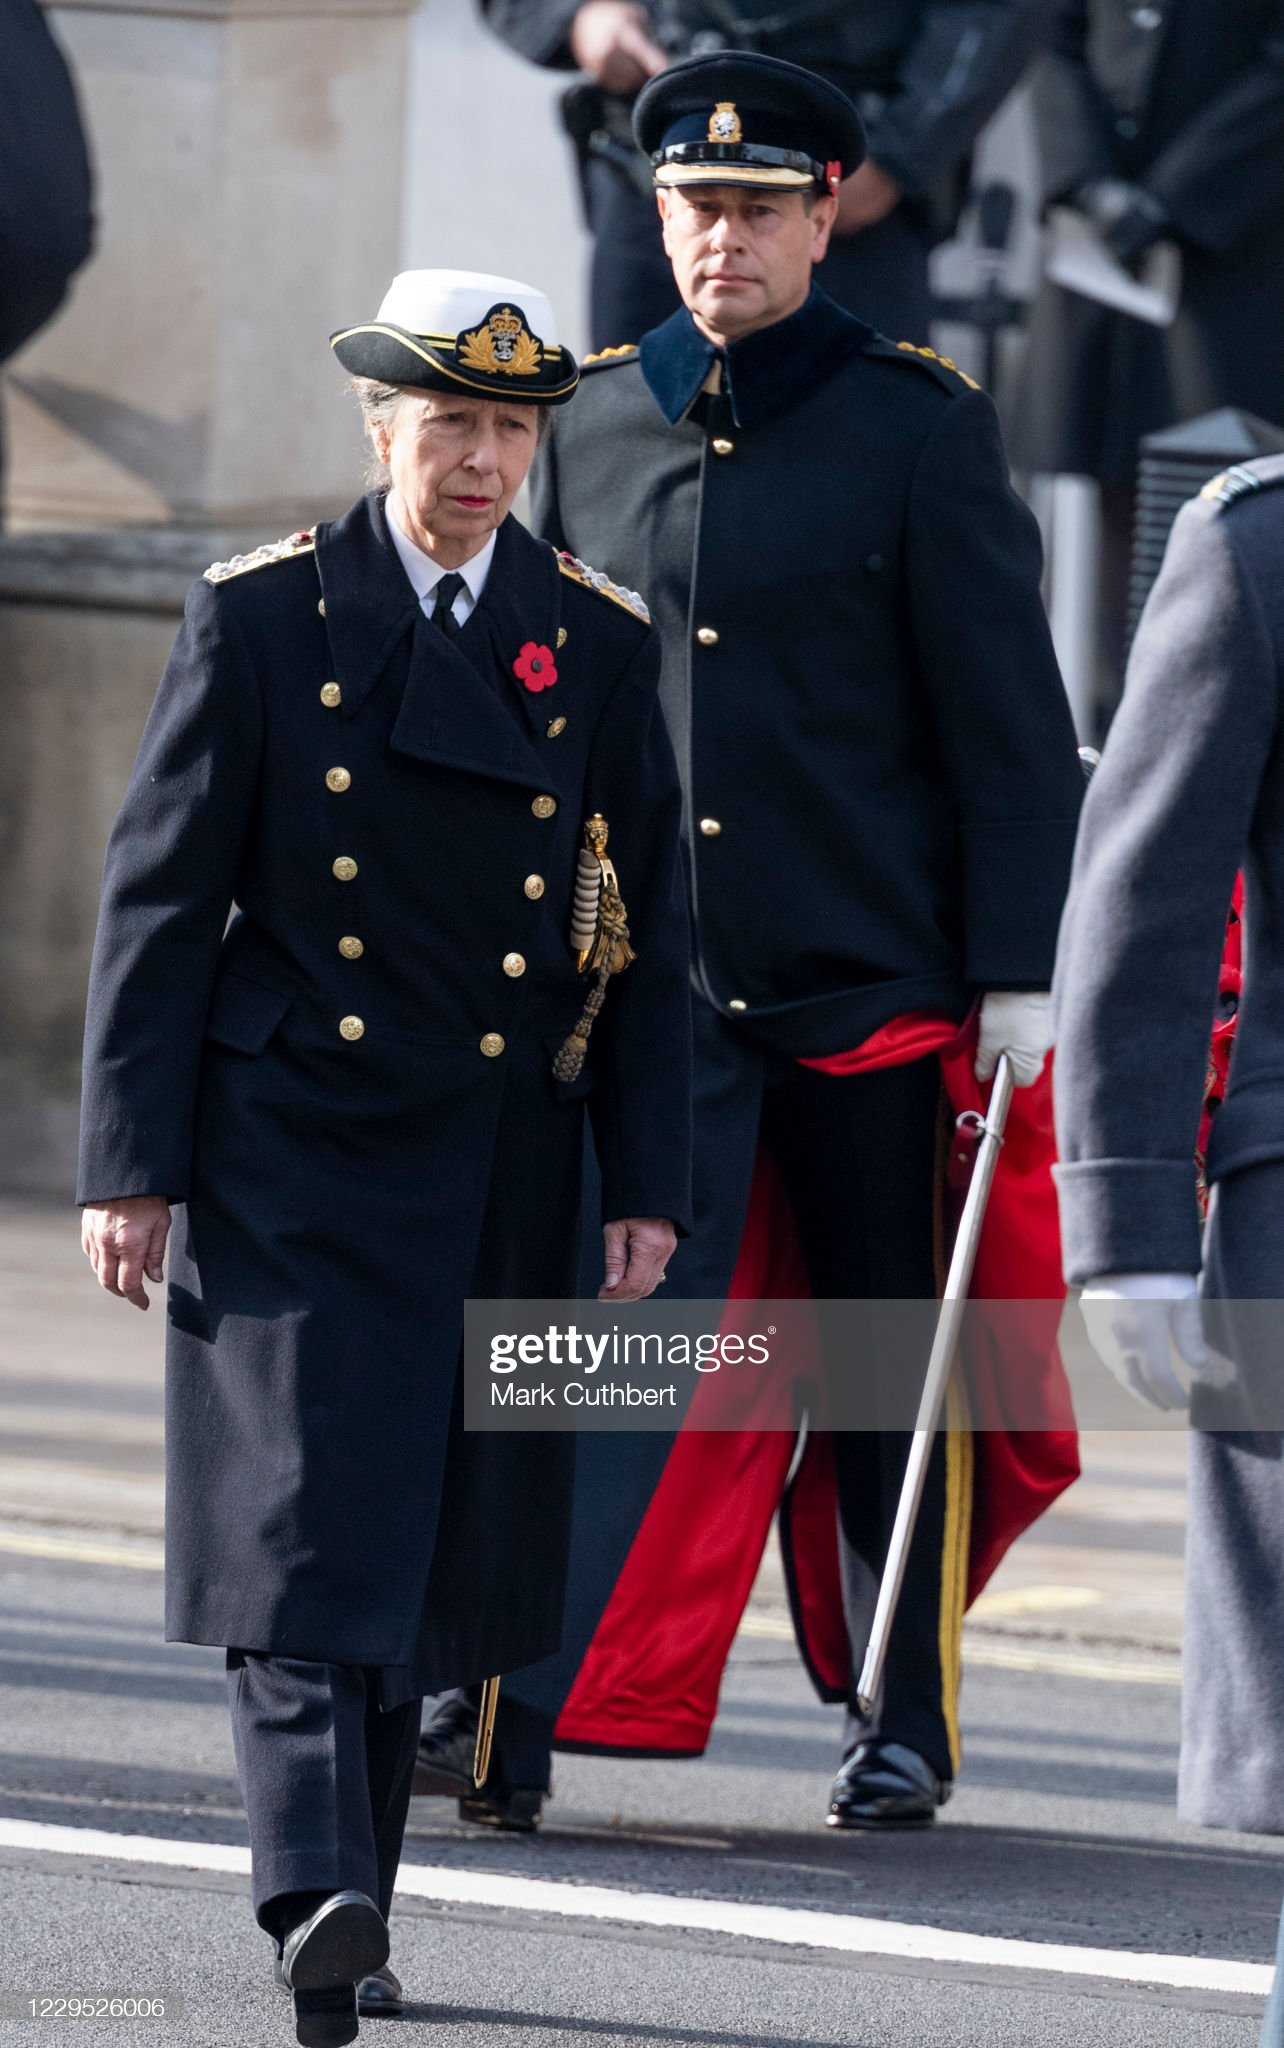 https://media.gettyimages.com/photos/princess-anne-princess-royal-and-prince-edward-earl-of-wessex-attend-picture-id1229526006?s=2048x2048